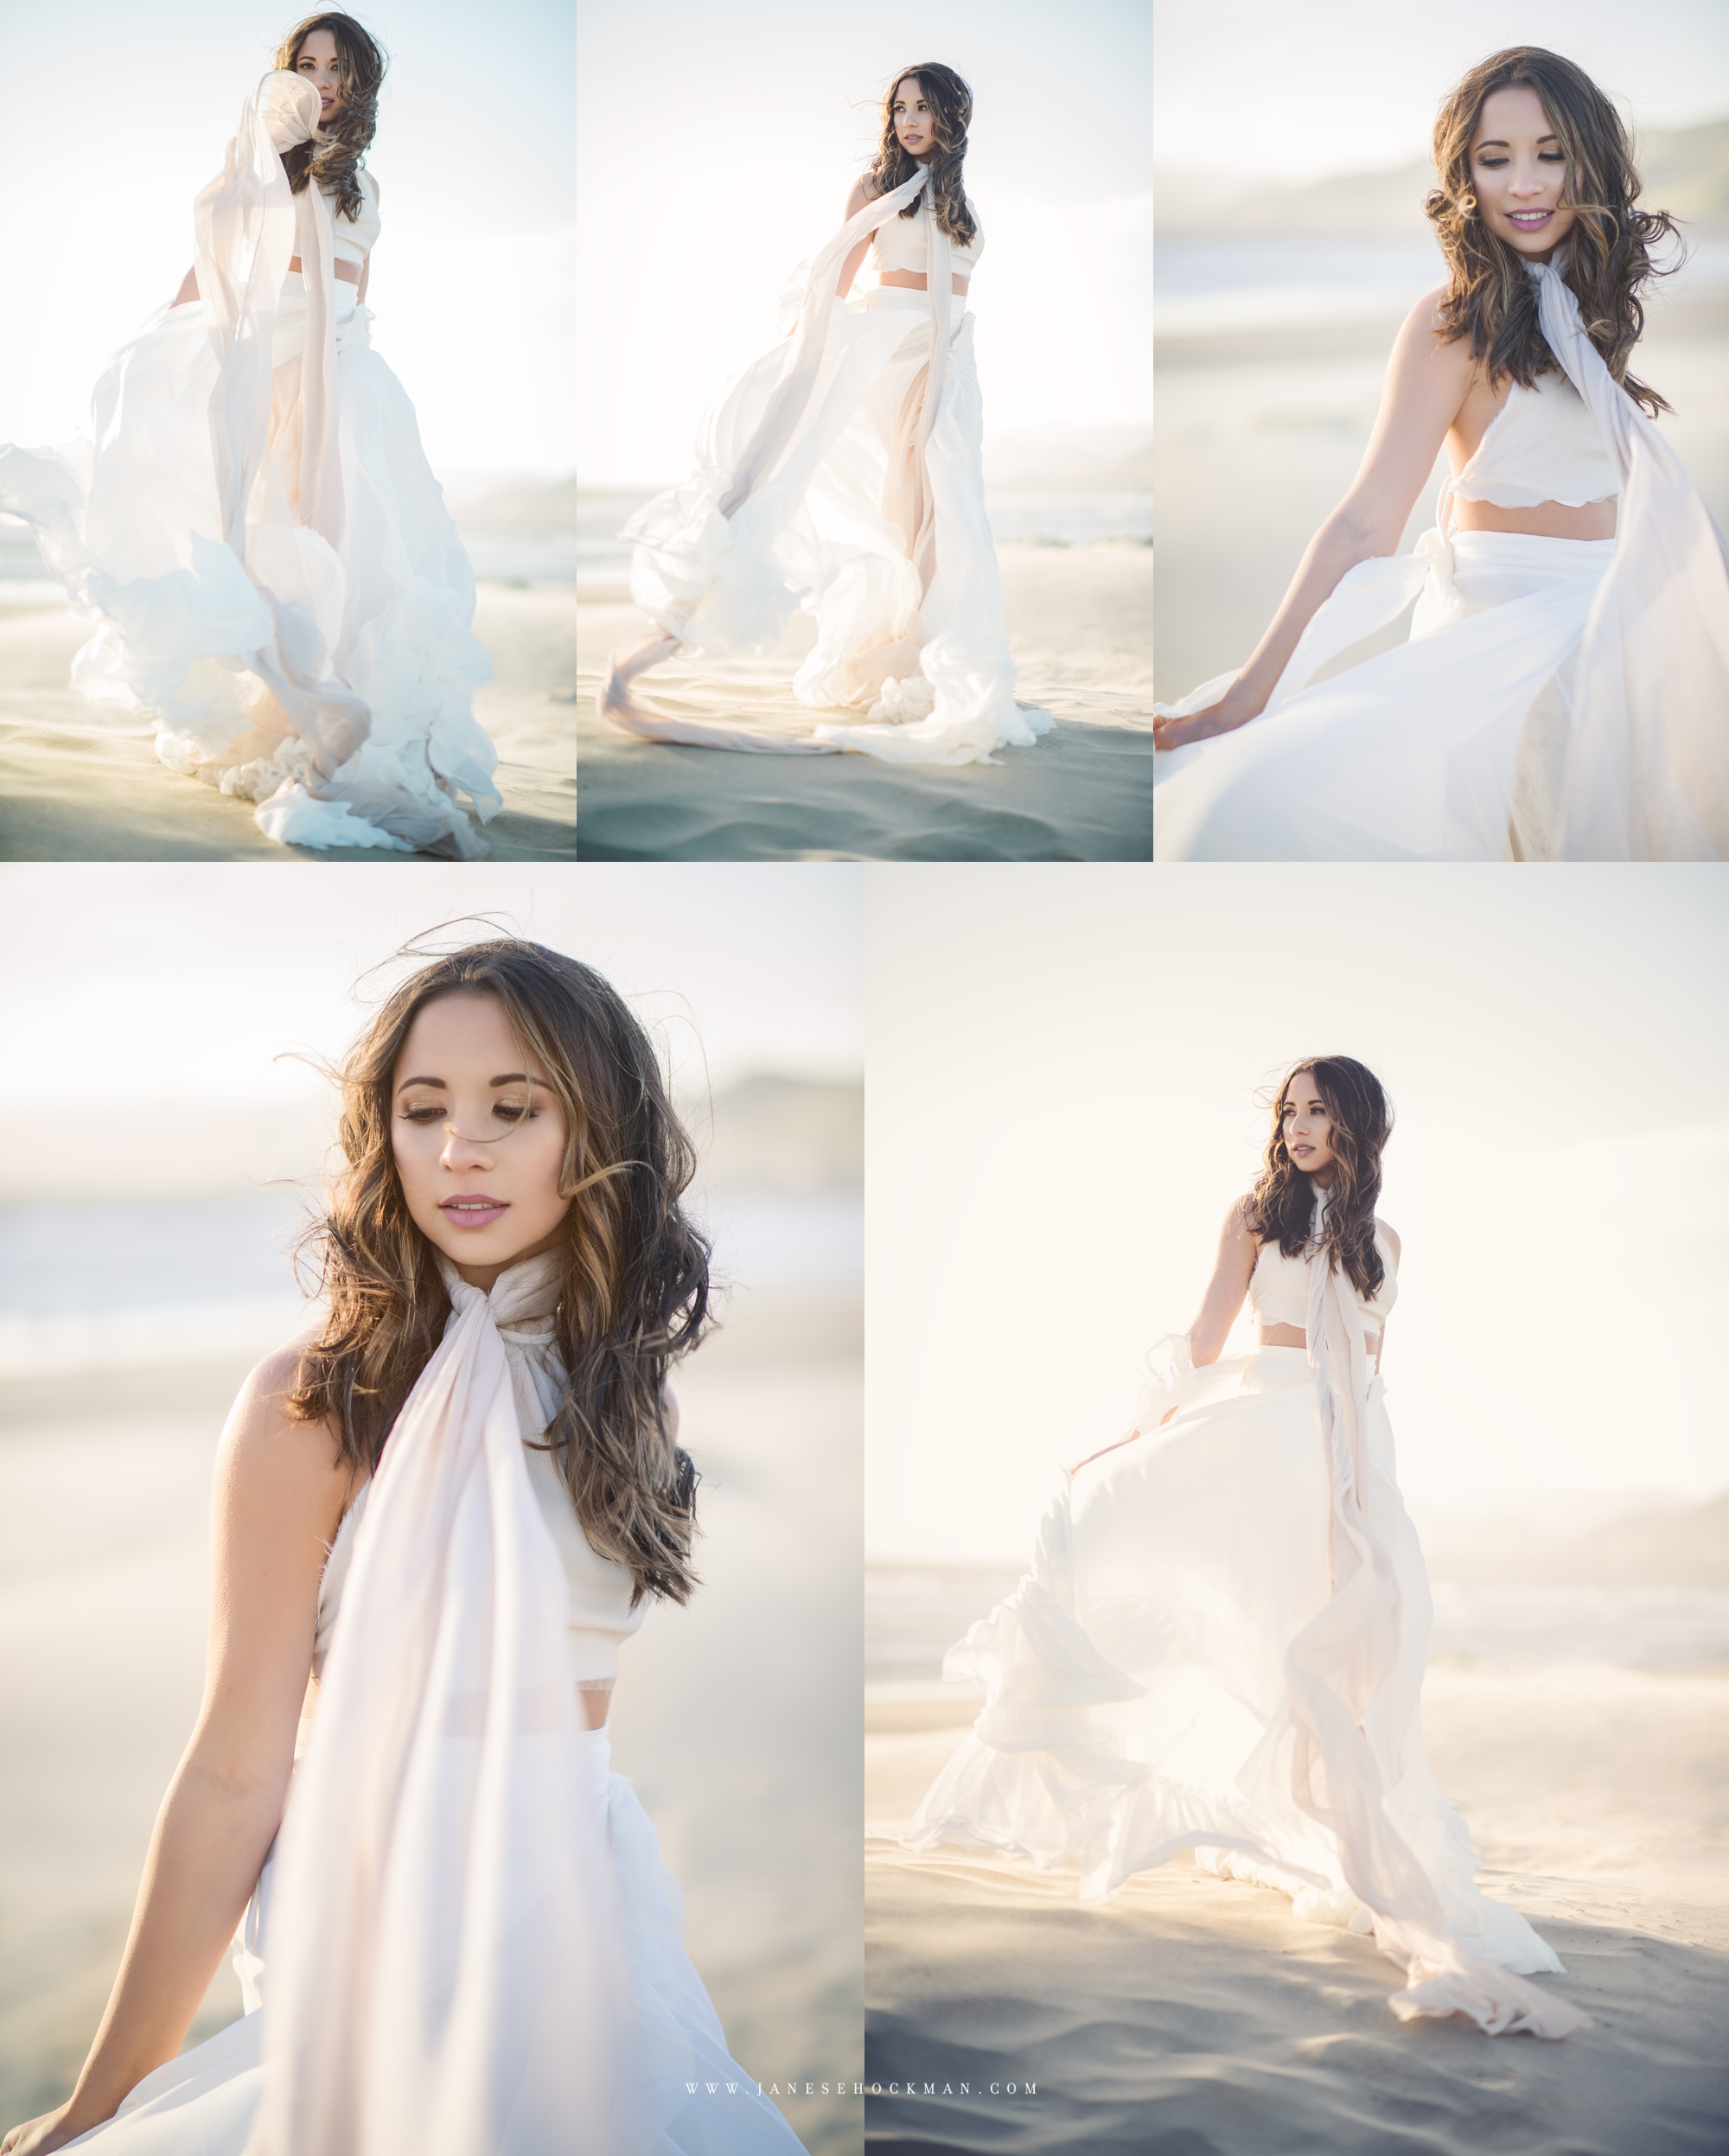 Grover Beach Sand Dunes-Janese Hockman Photography-High School Senior Portraits-Creative Shoot 3.jpg